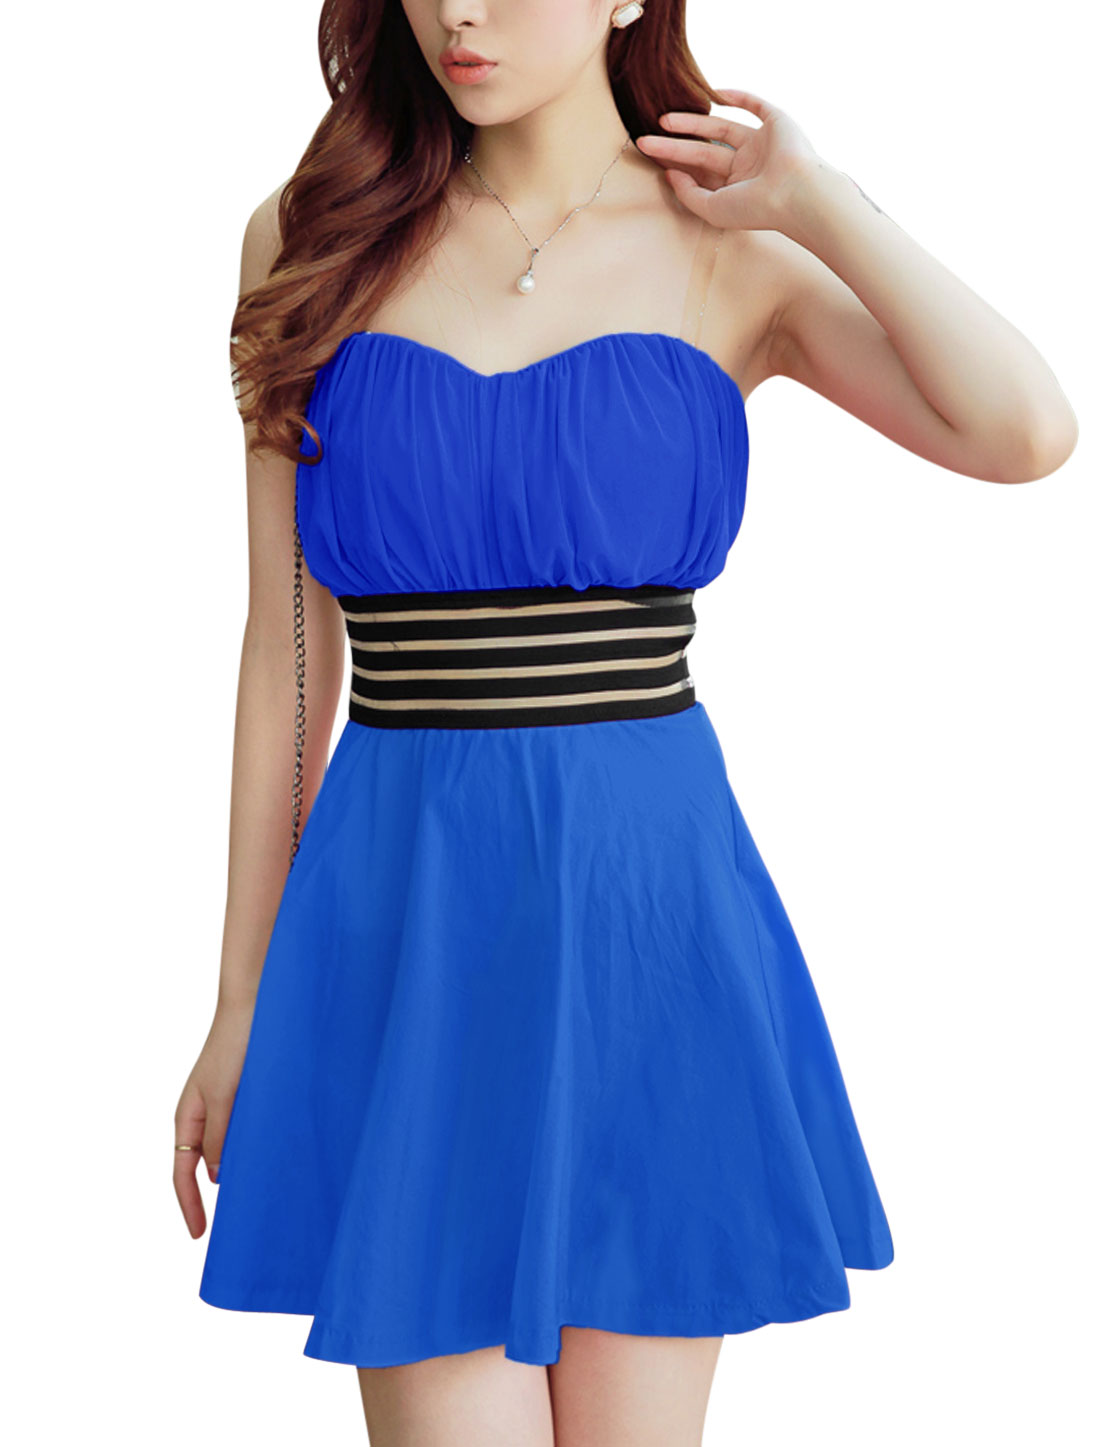 Ladies Blue Slipover Elastic Waistband Padded Bust Mesh Splice Strapless Corset Dress S